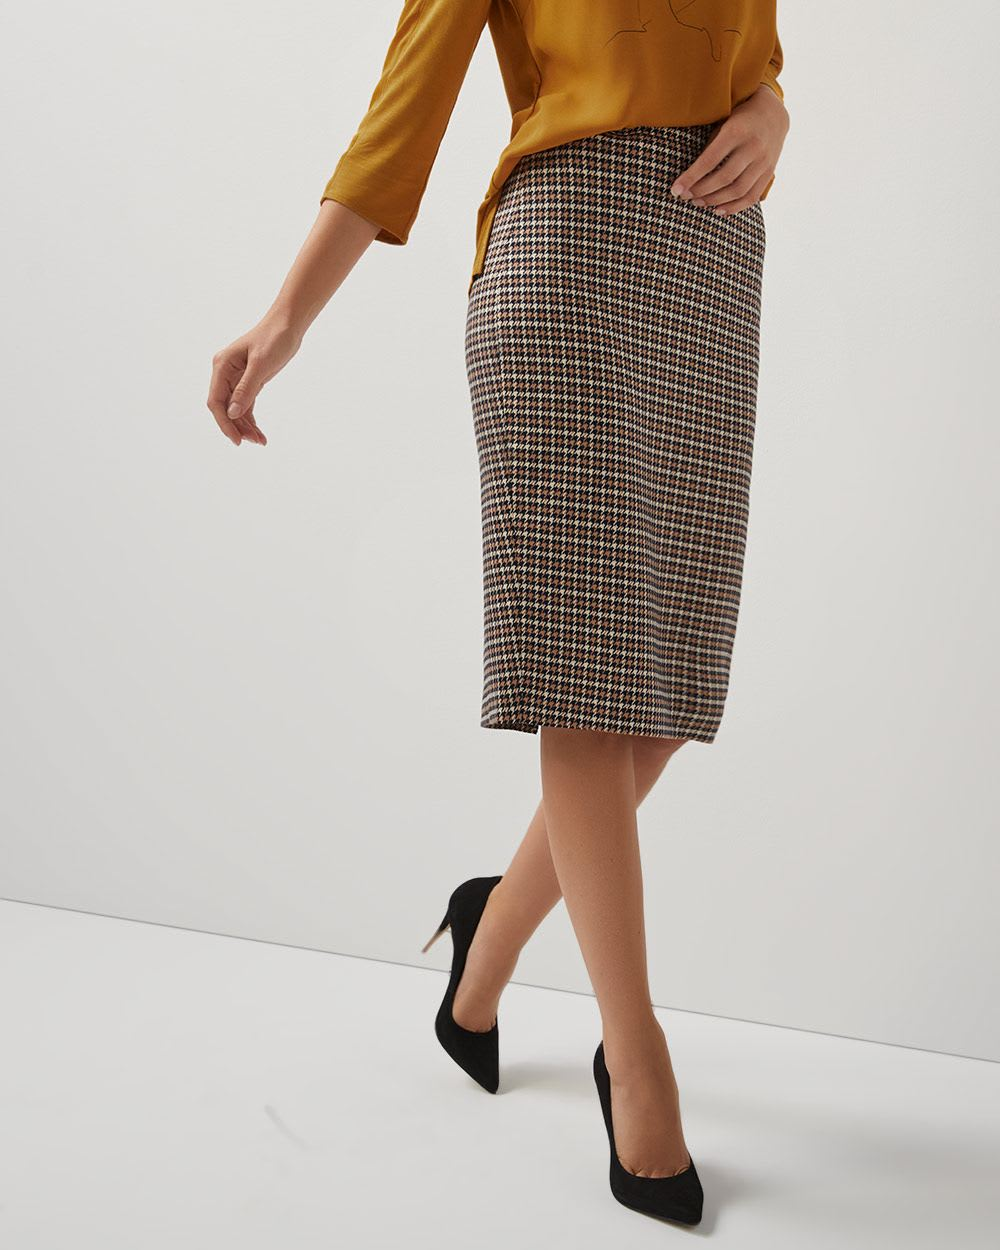 644e807e8 High-waist Houndstooth Everyday stretch Pencil Skirt | RW&CO.